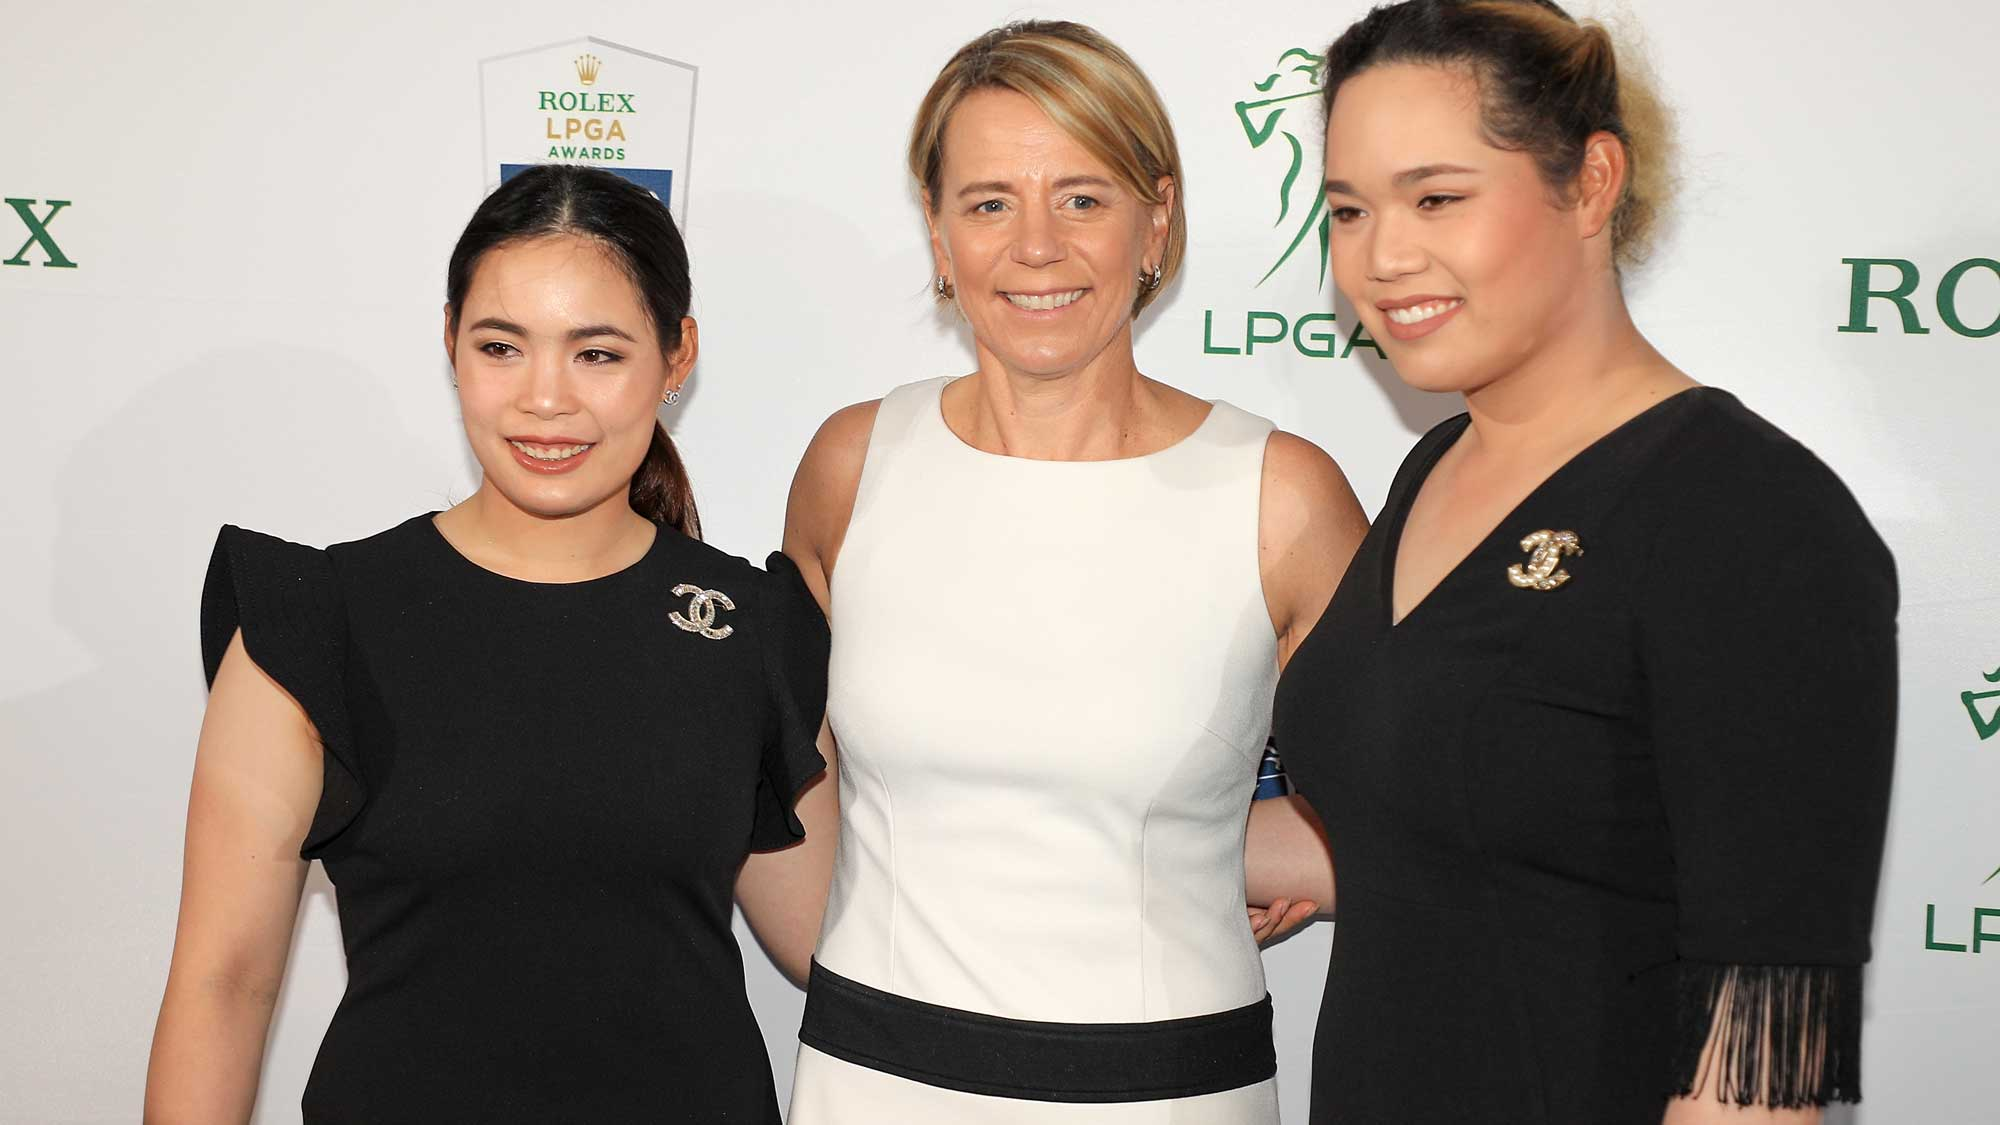 Moriya Jutanugarn (left) and Ariya Jutanugarn of Thailand pose for a photo with former LPGA golfer Annika Sorenstam on the green carpet during the LPGA Rolex Players Awards at the Ritz-Carlton Golf Resort